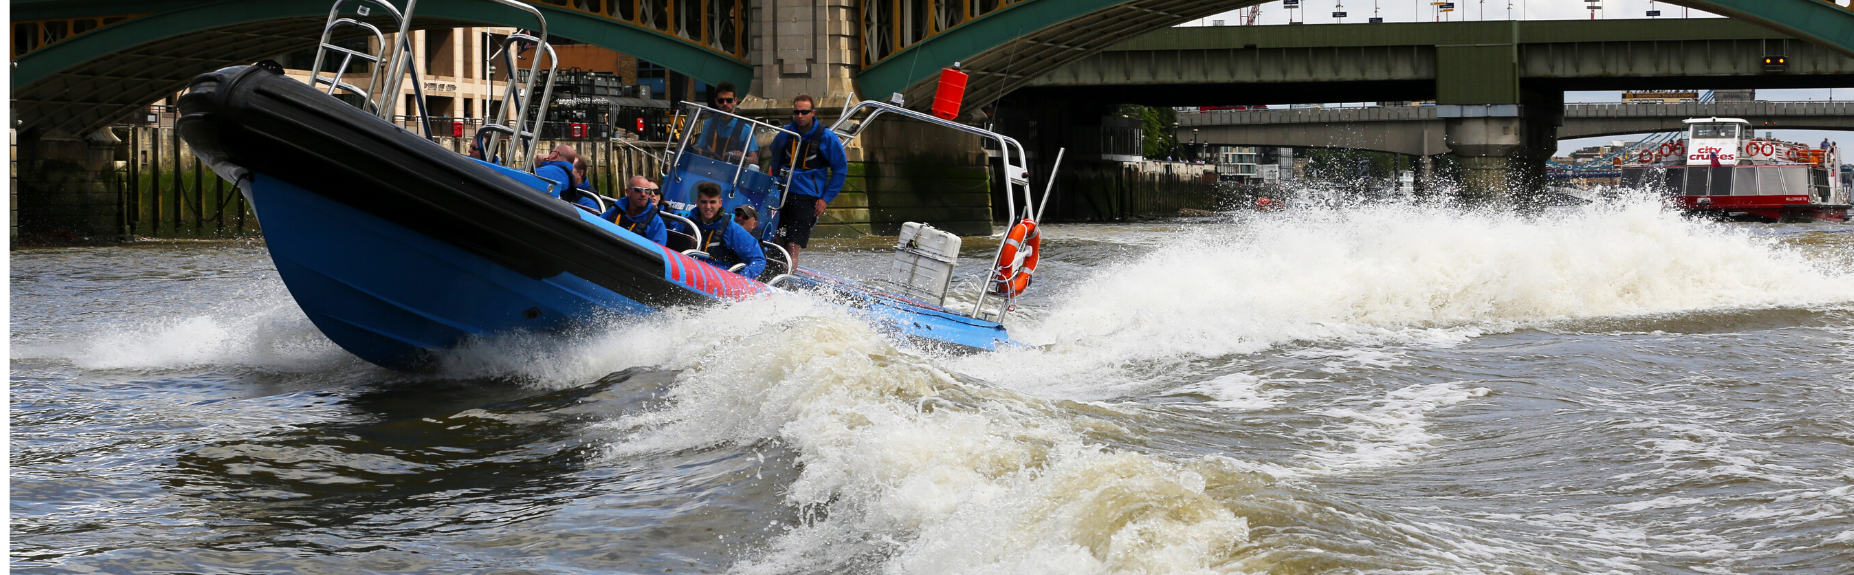 rent-thamesjet-in-london